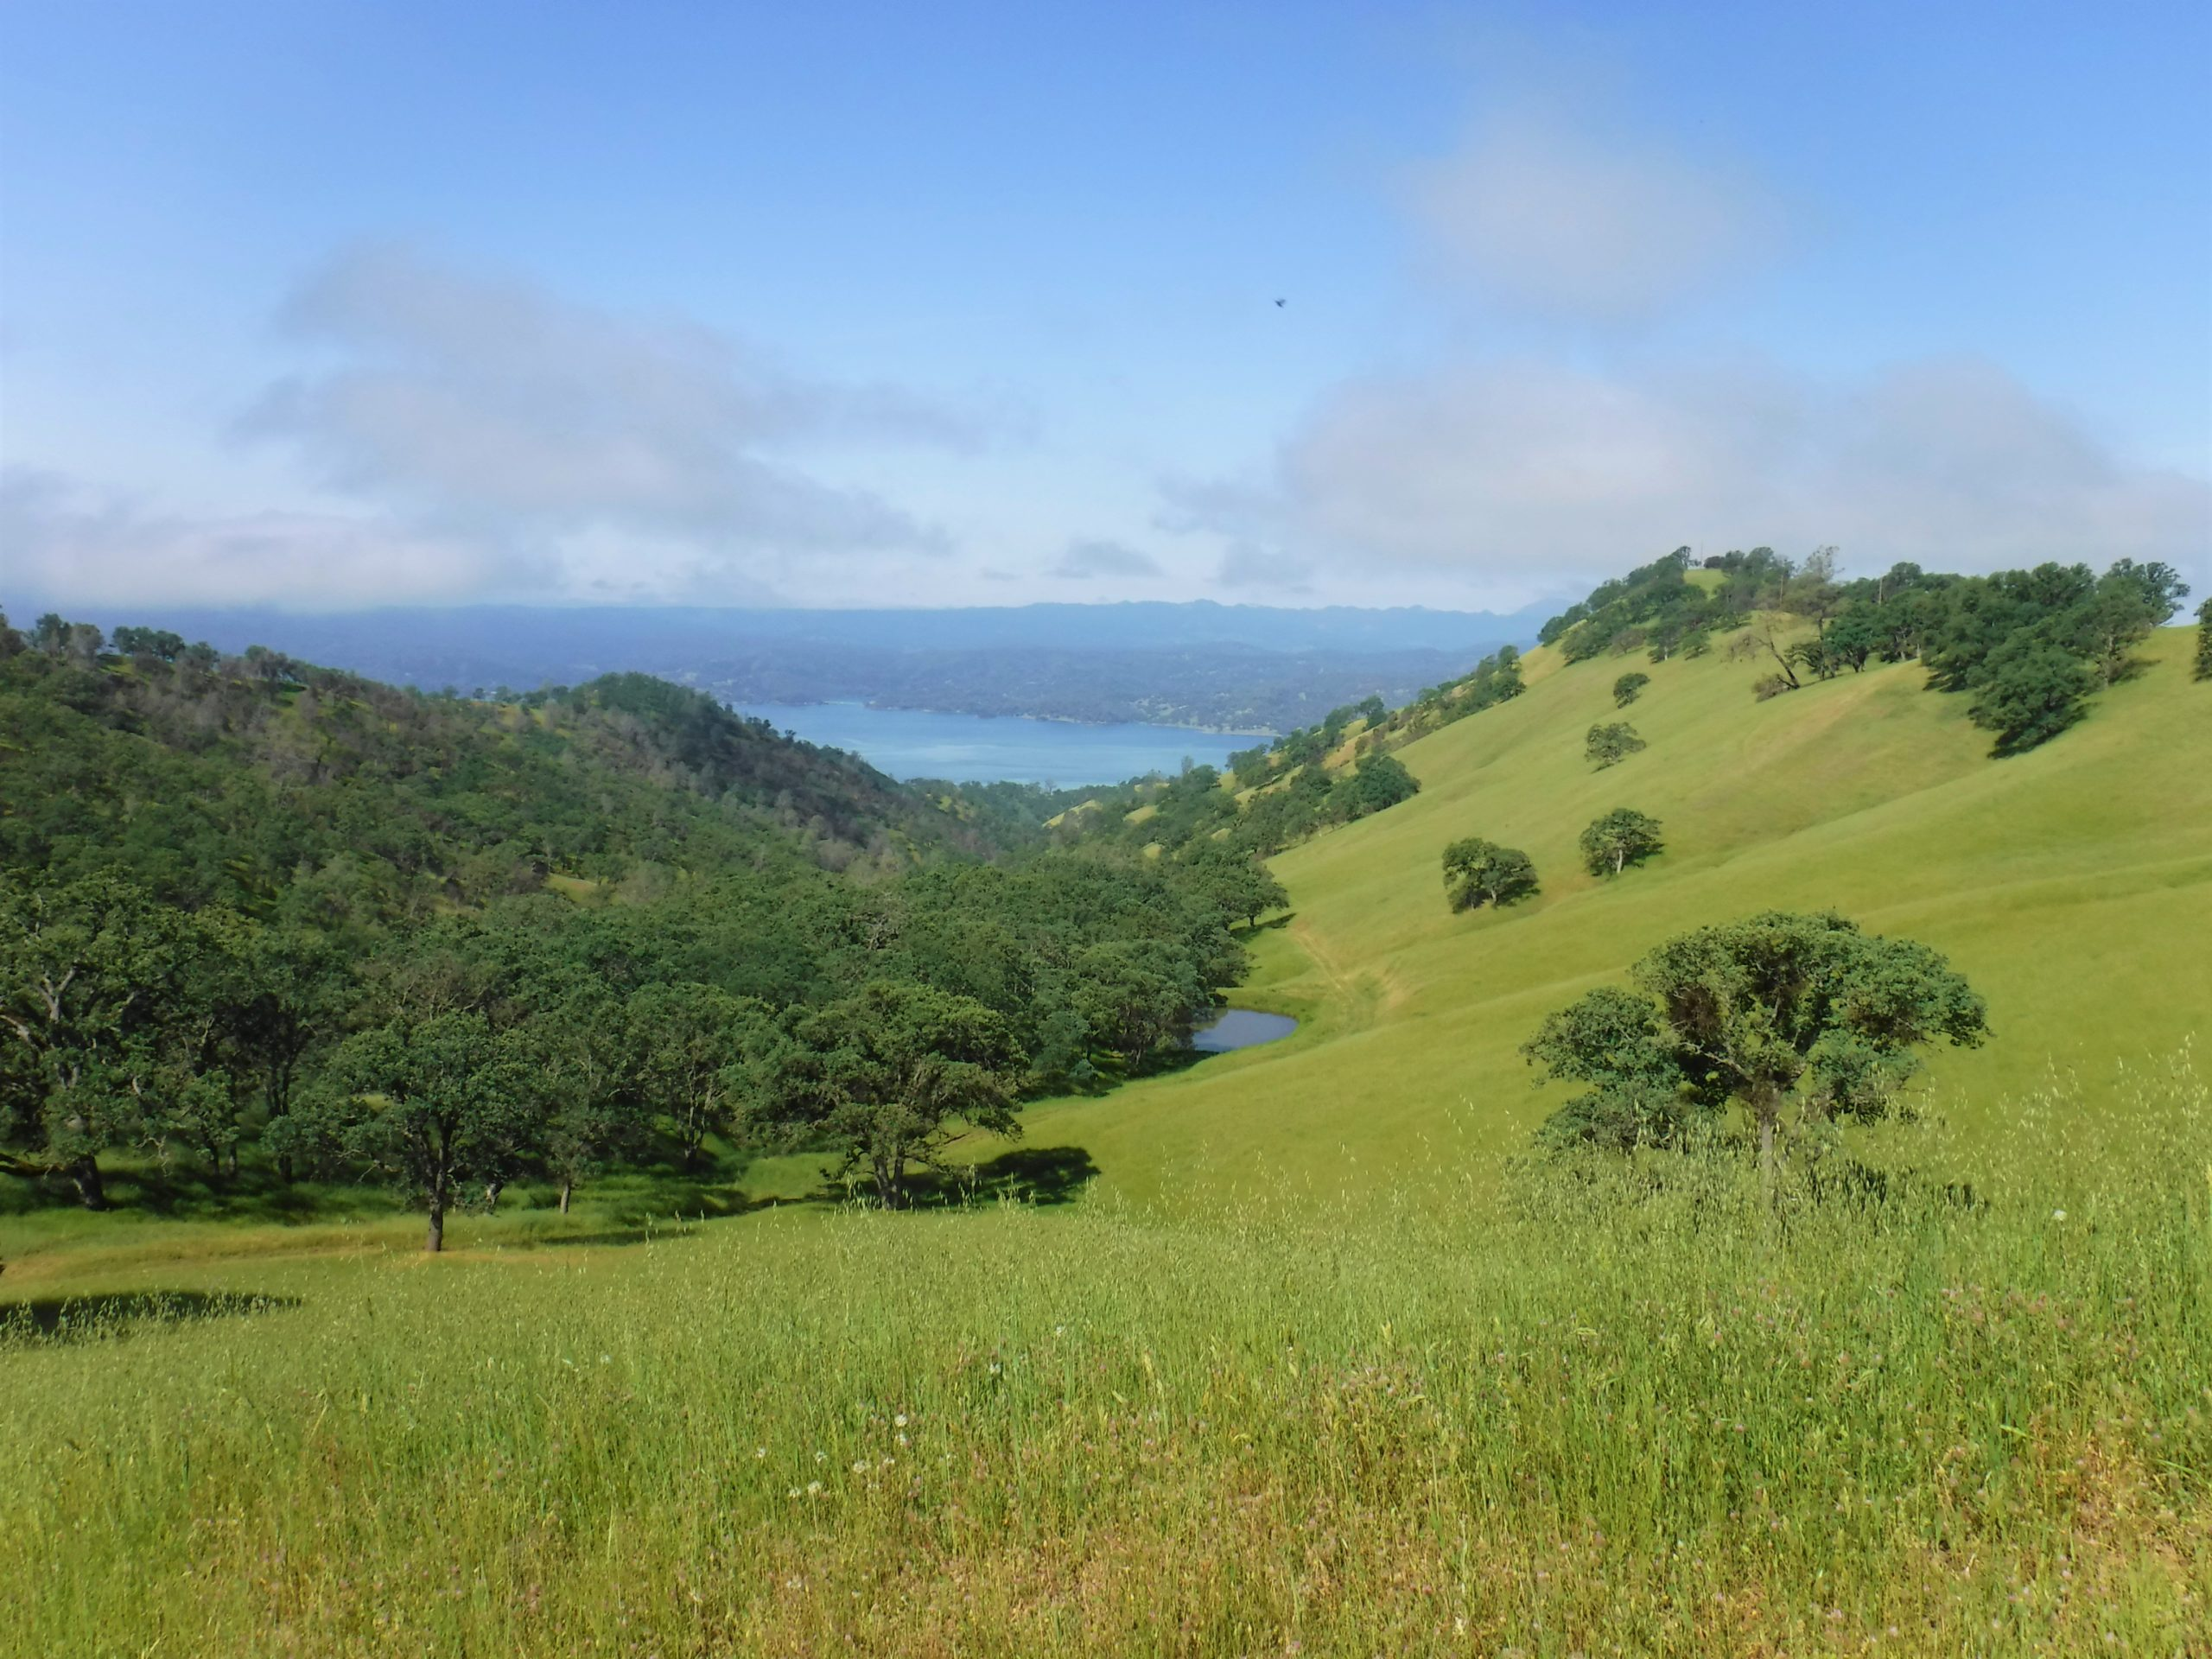 Image of Running Deer Ranch with Lake Berryessa in the Background